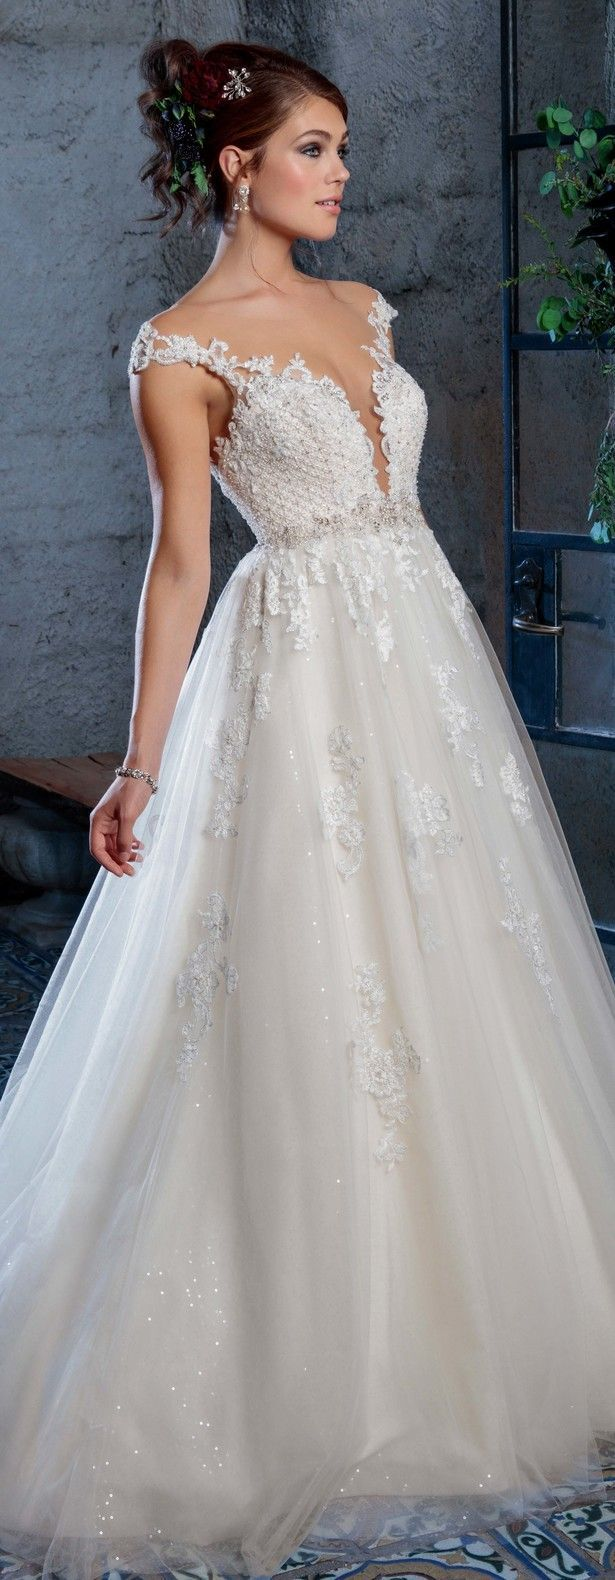 Lace over tulle wedding dress january 2019  best Ślub images on Pinterest  Homecoming dresses straps